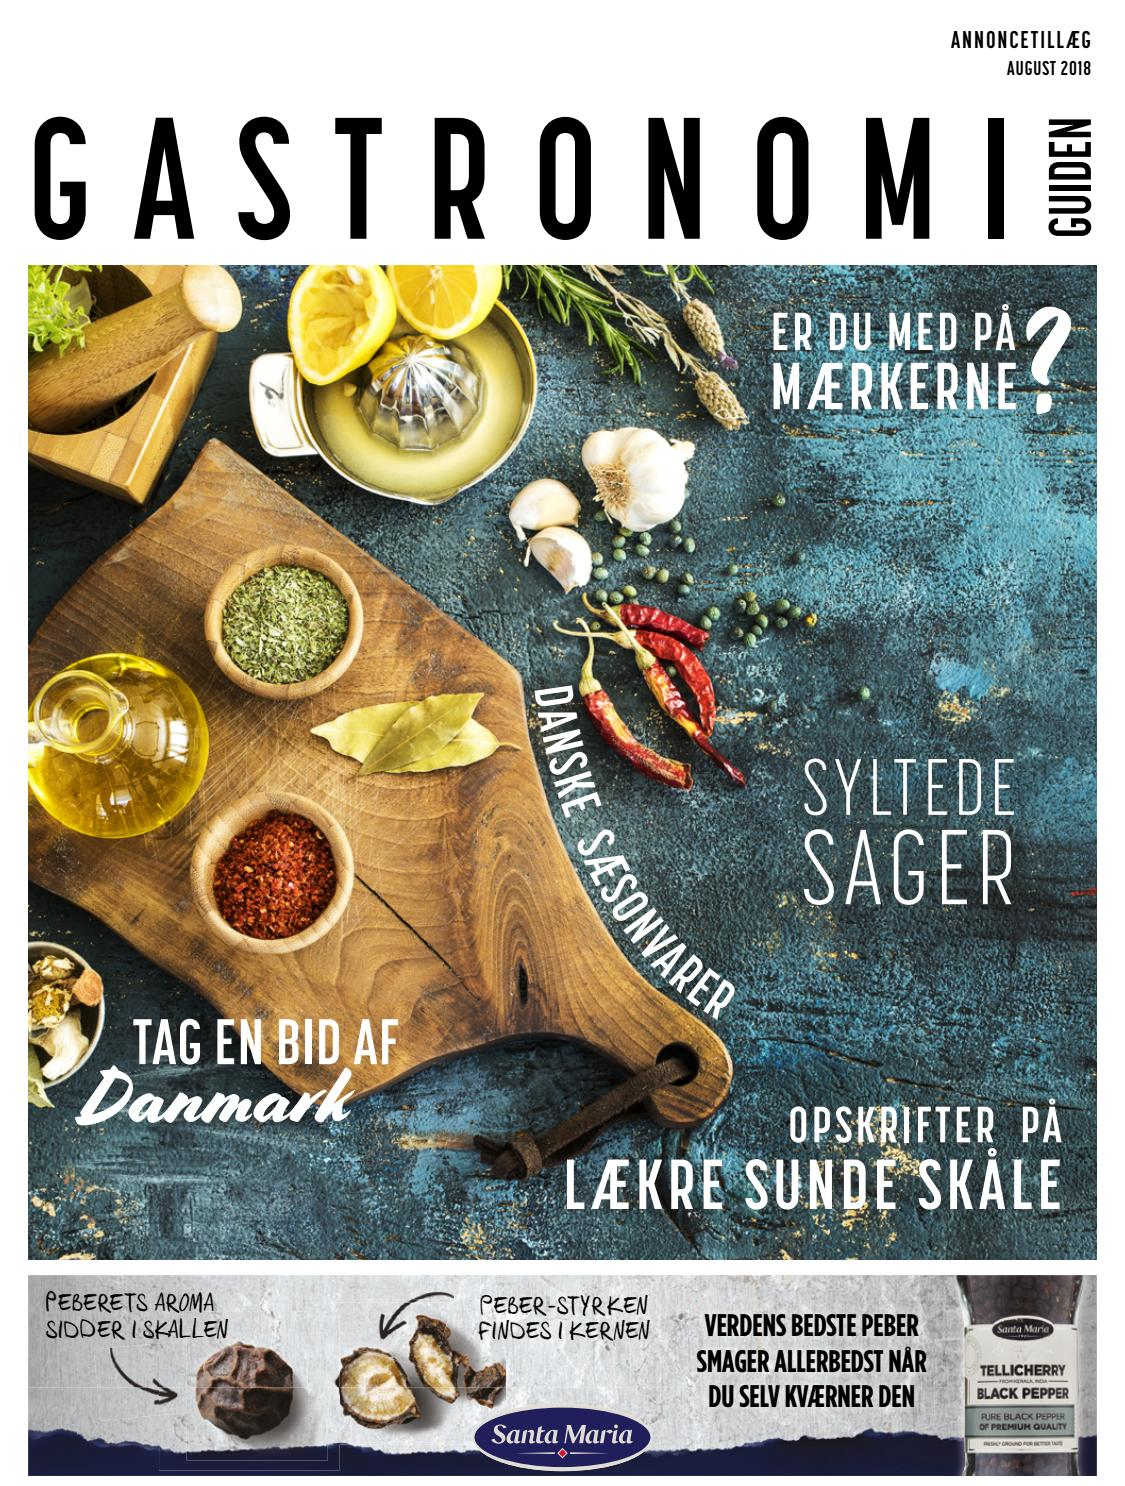 429bac82f8f Gastronomi Guide 2018, August 2018